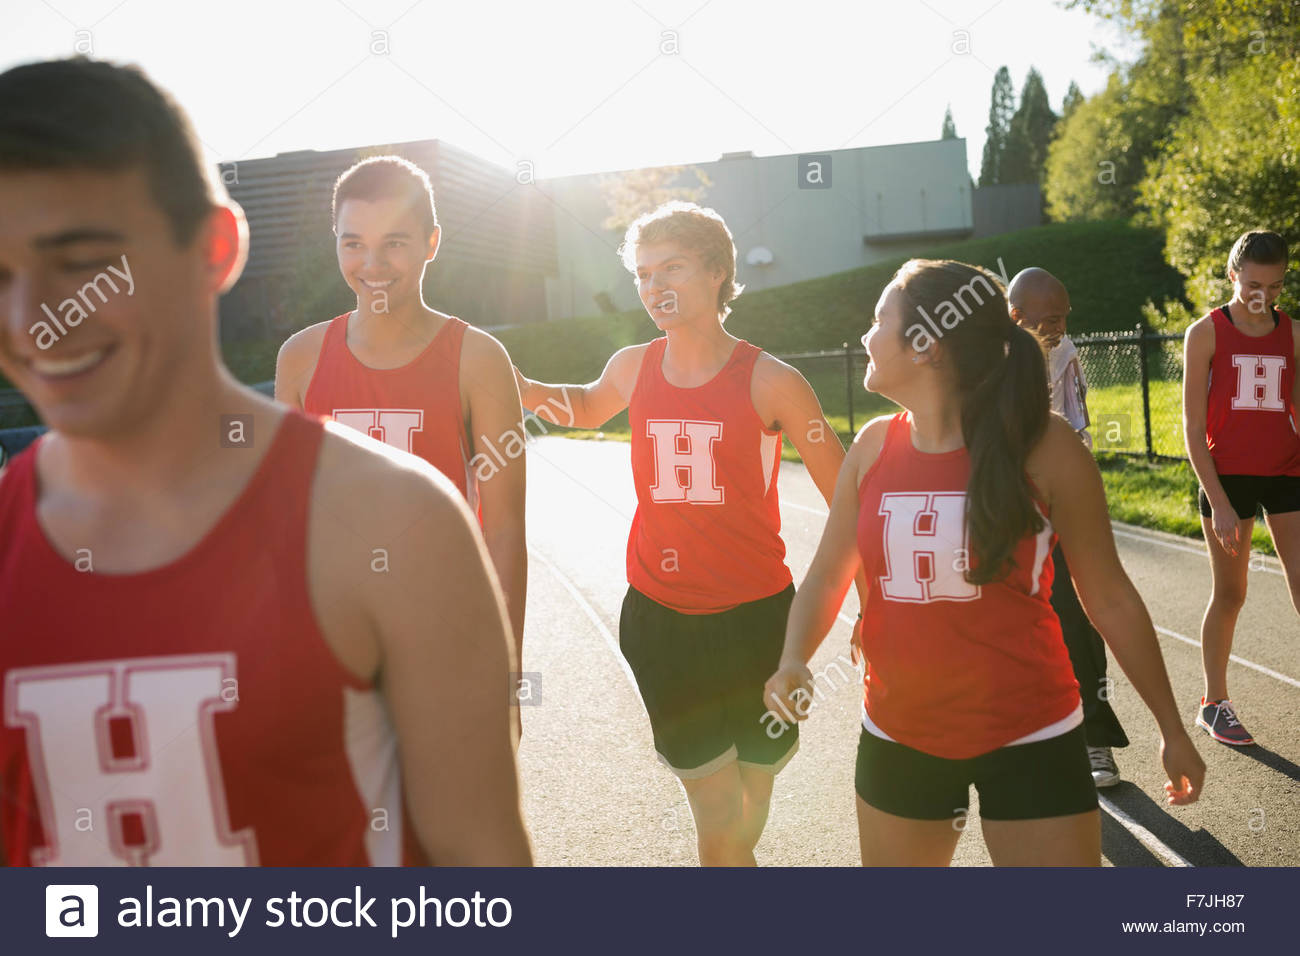 High school track and field team running track - Stock Image